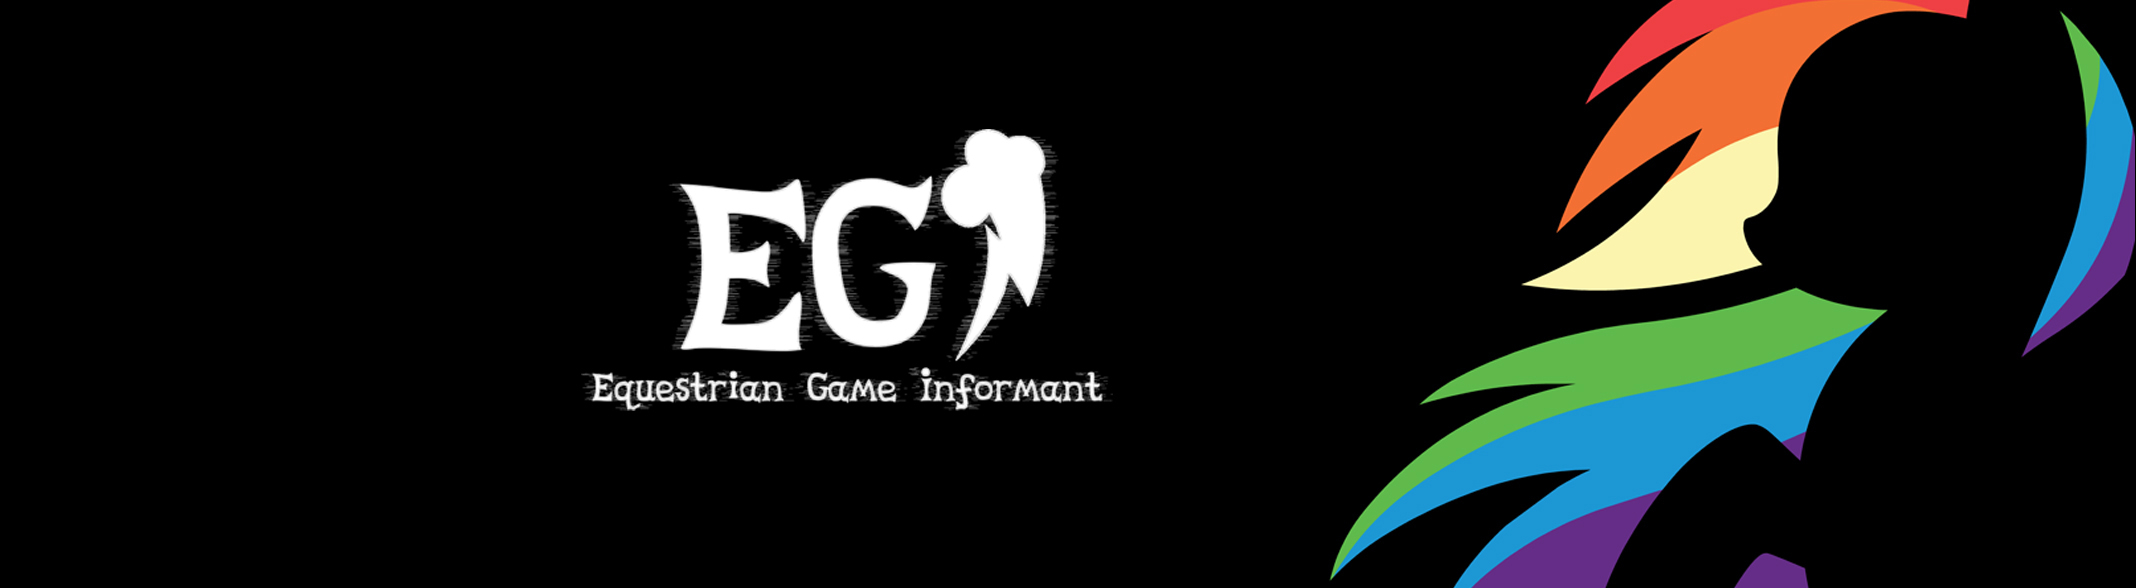 Equestrian Game Informant [EGI]